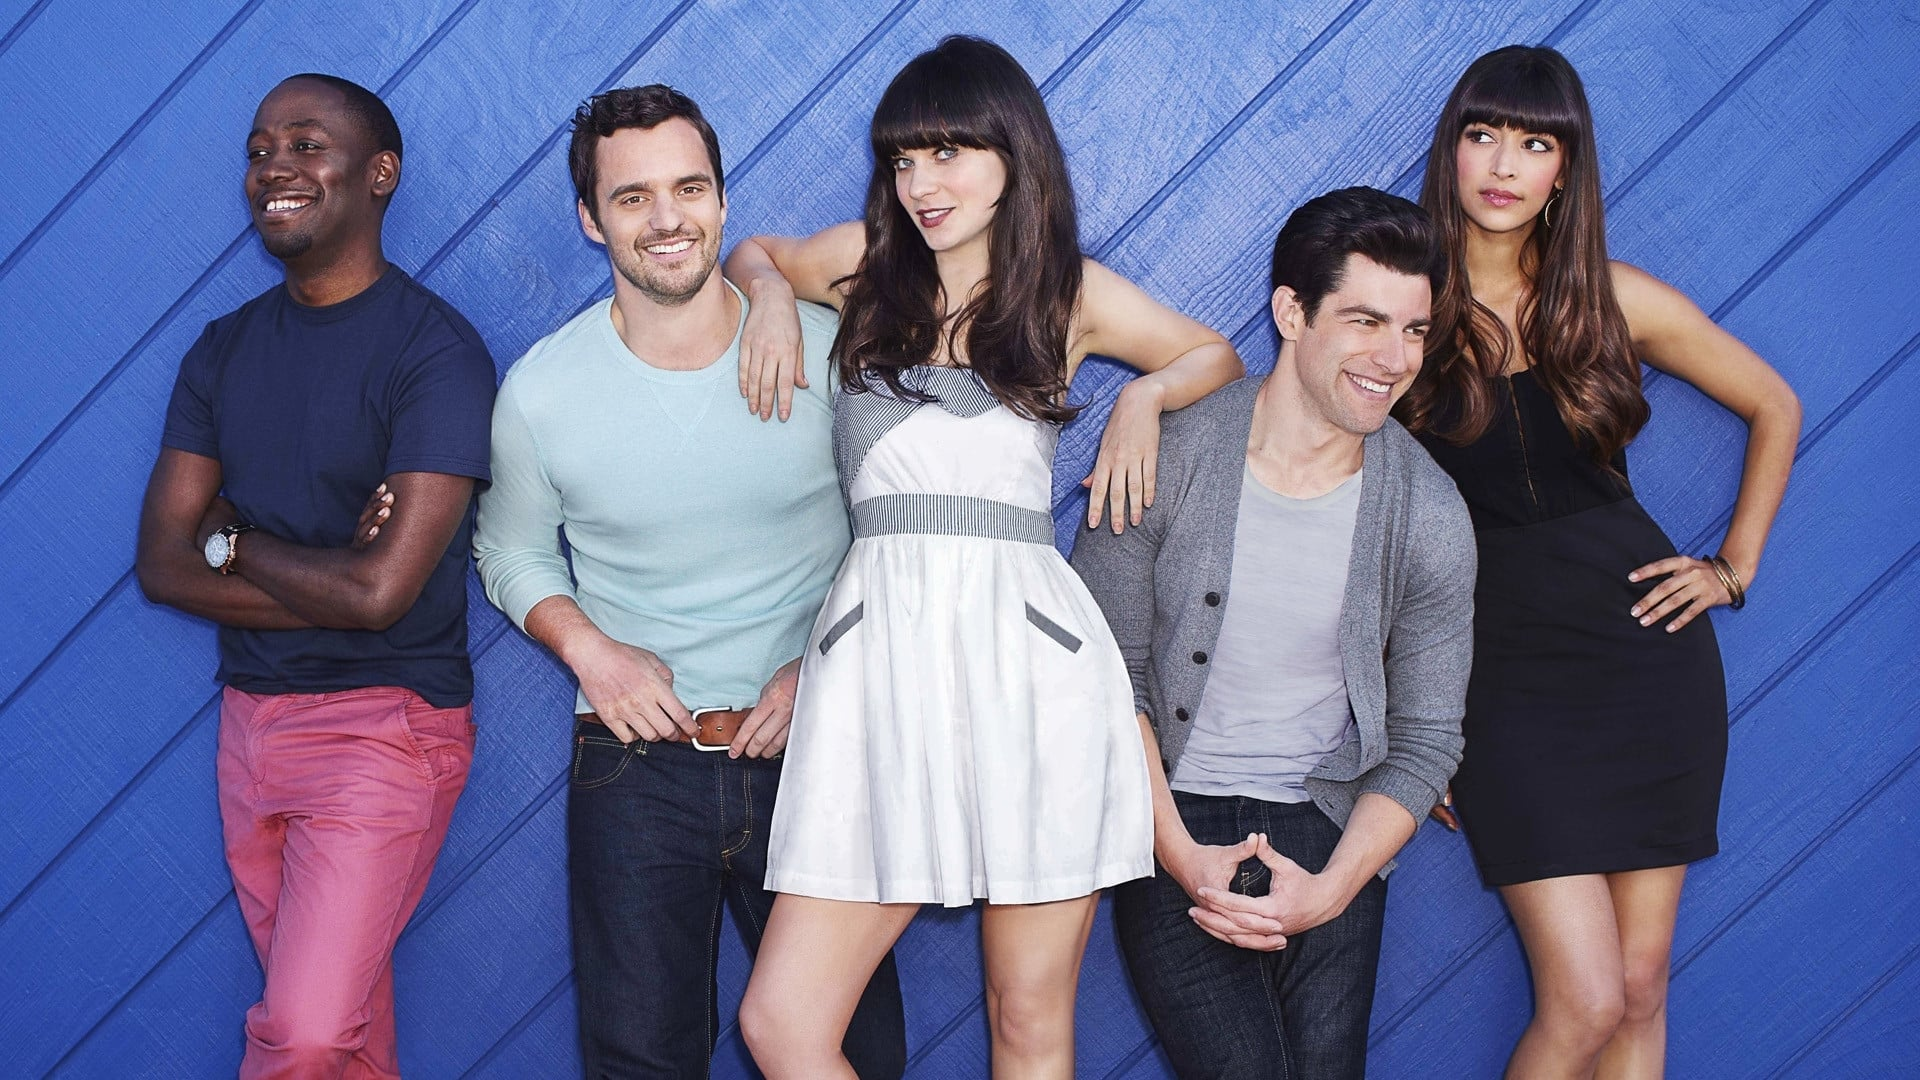 New Girl - Season 7 Episode 2